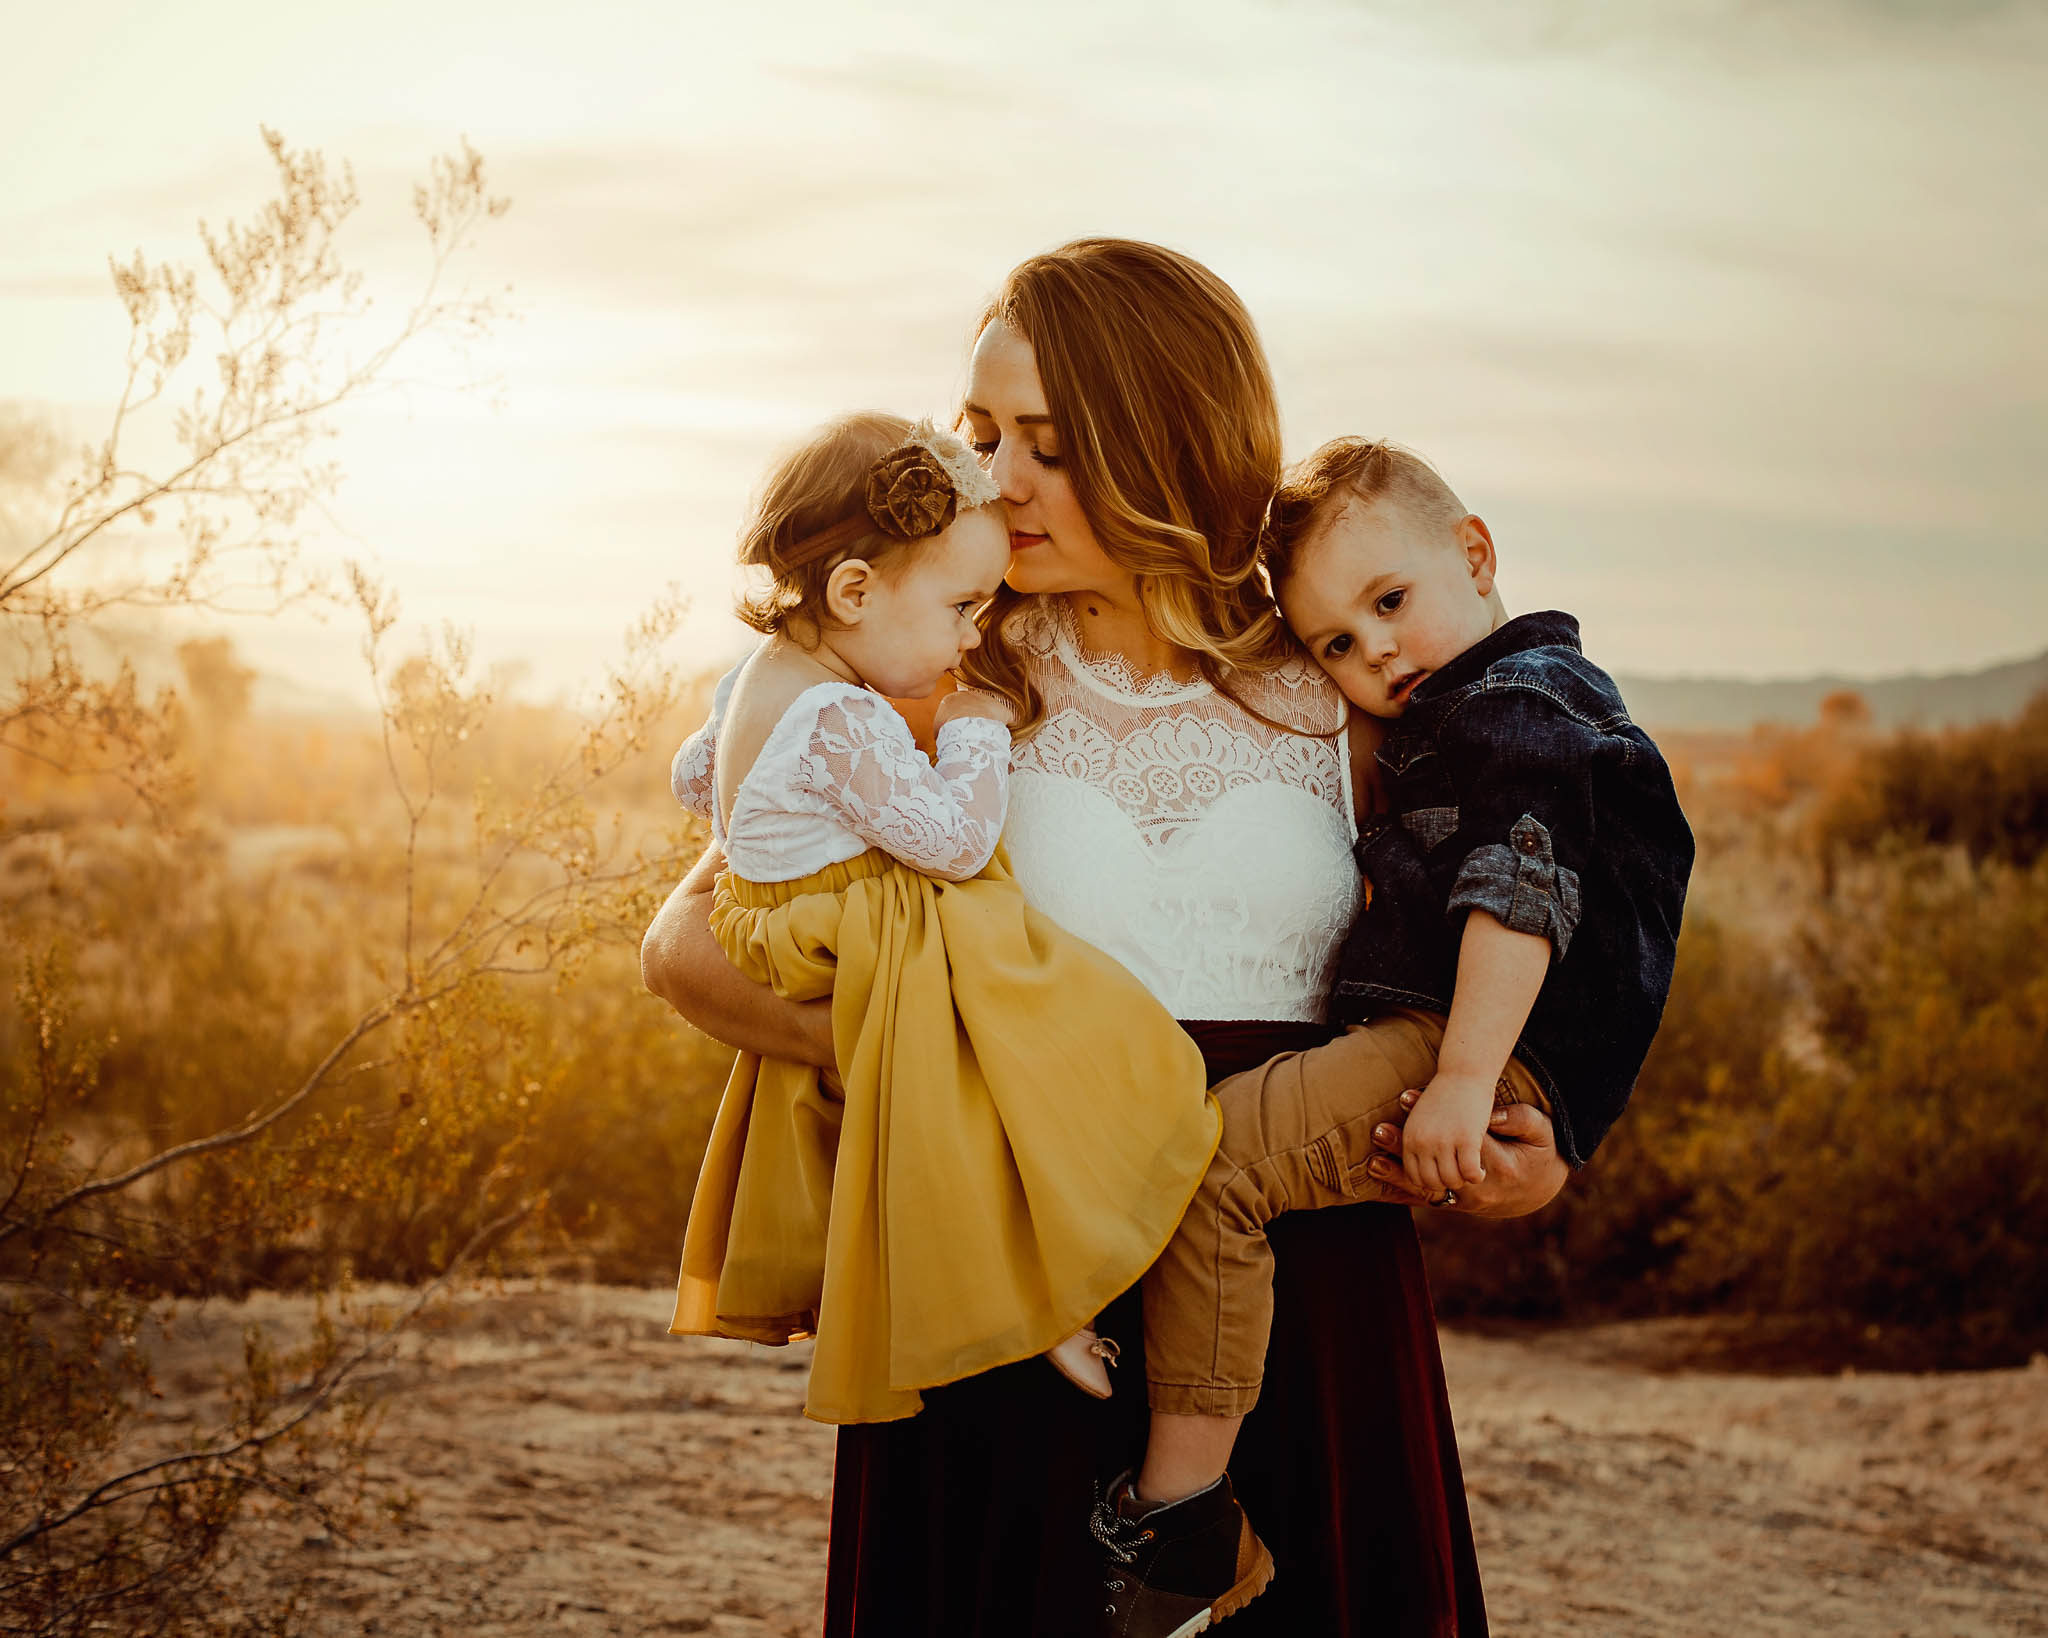 yuma arizona photographer, arizona maternity photographer, photographer headshot, arizona photographer